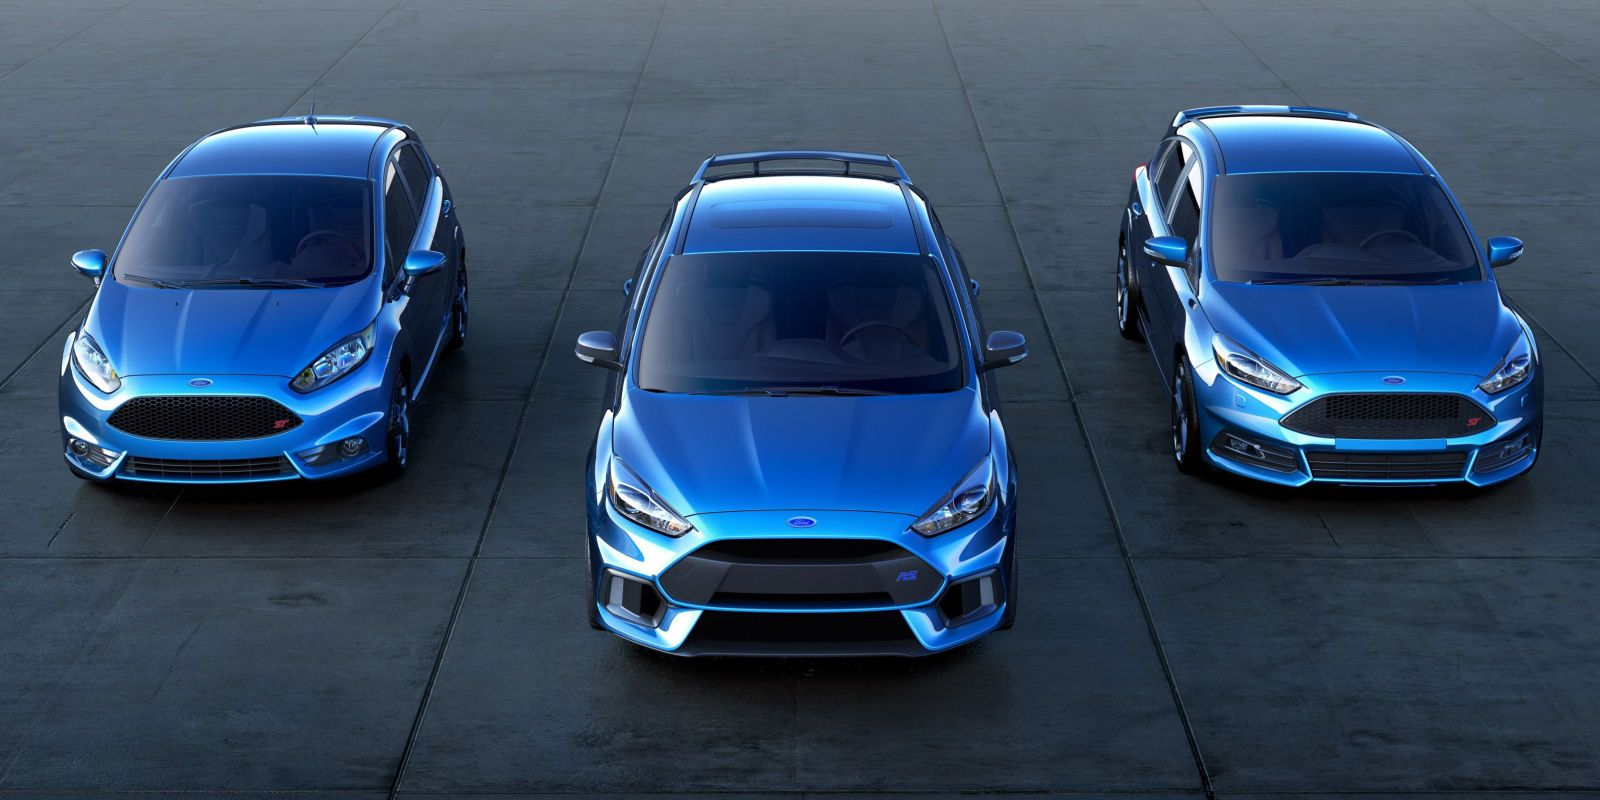 Ford Is Saving Hot Hatchbacks In America One Focus Rs At A Time